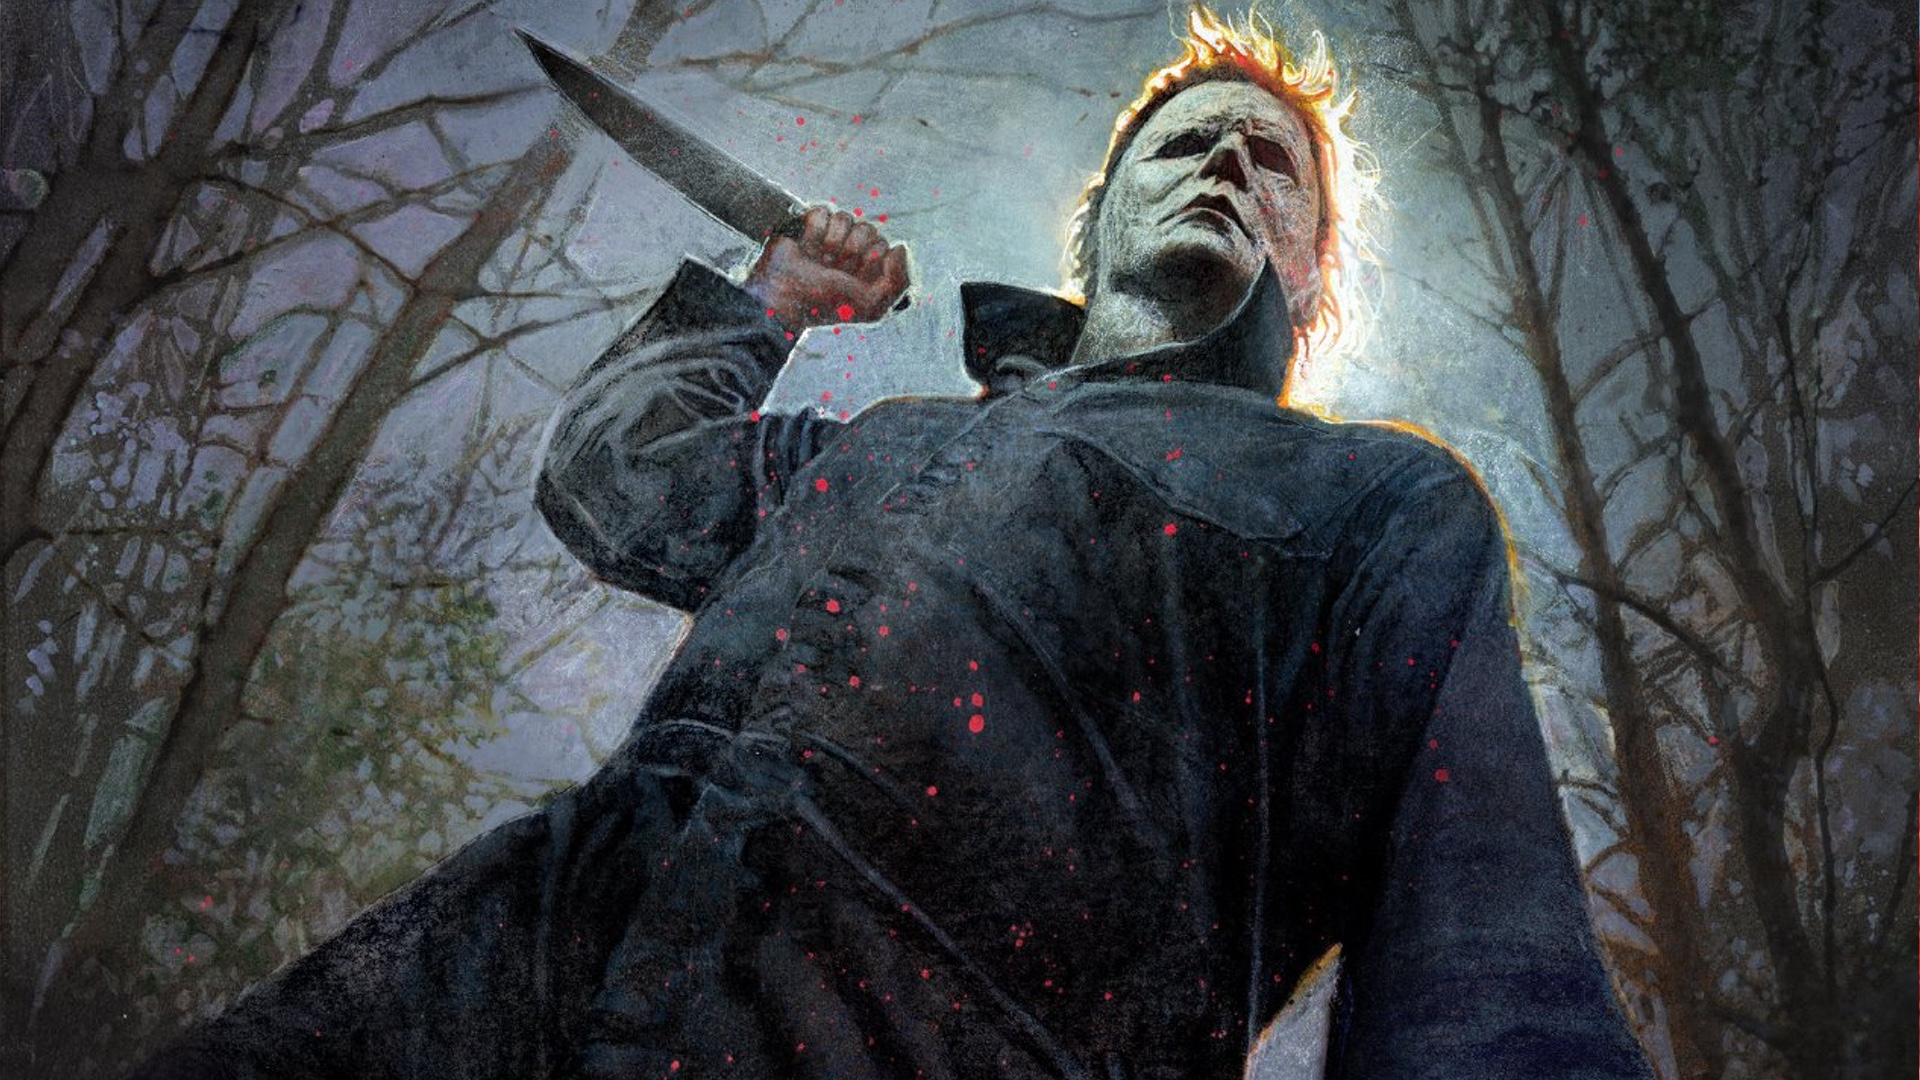 michael myers is read to kill in this